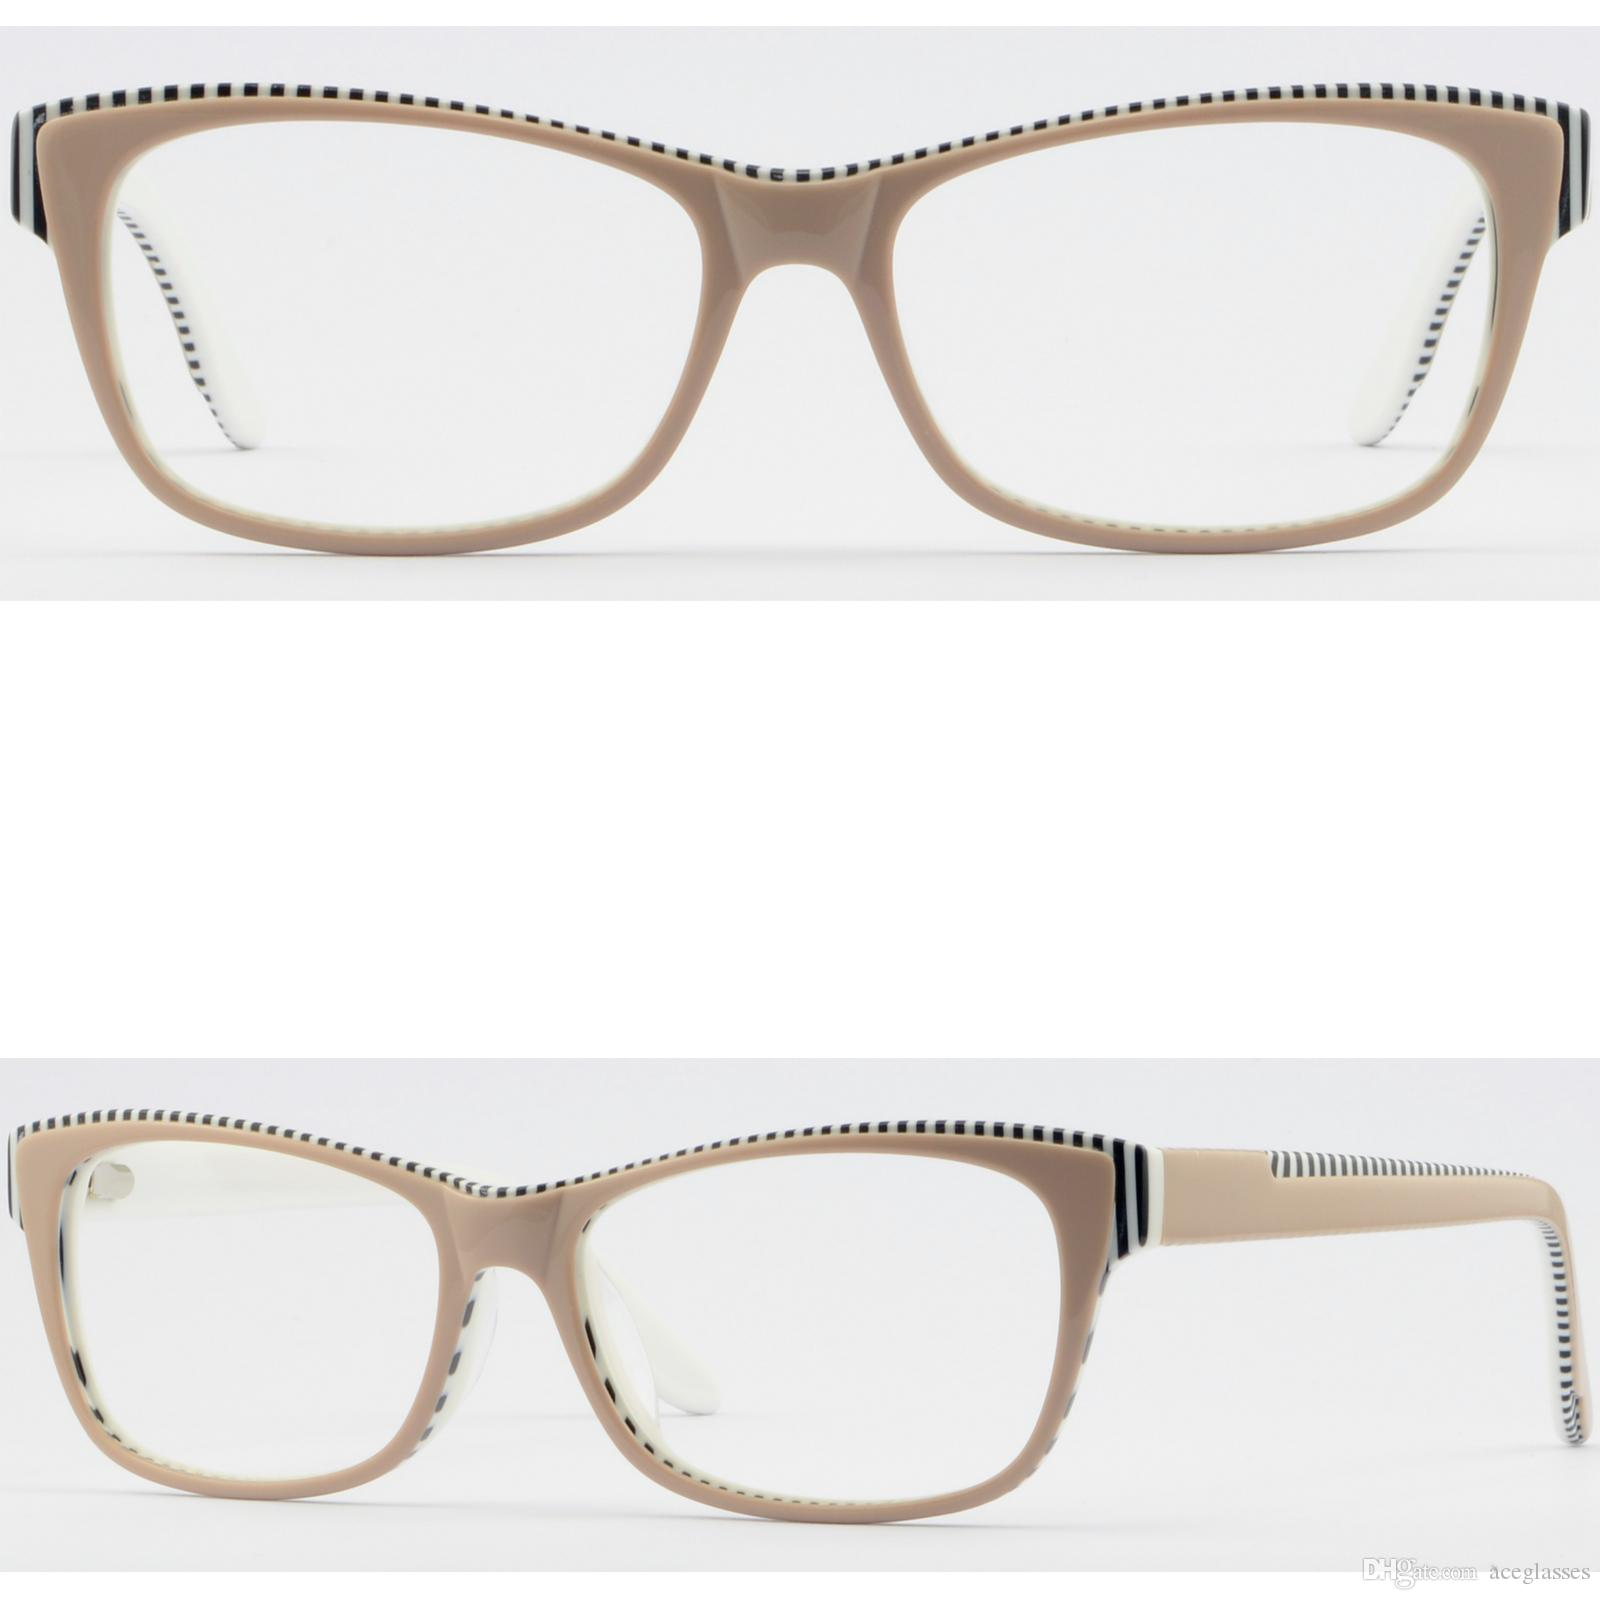 73462524816 Best Round Metal Eyeglass Frames Cheap Clear Prescription Glasses Frames